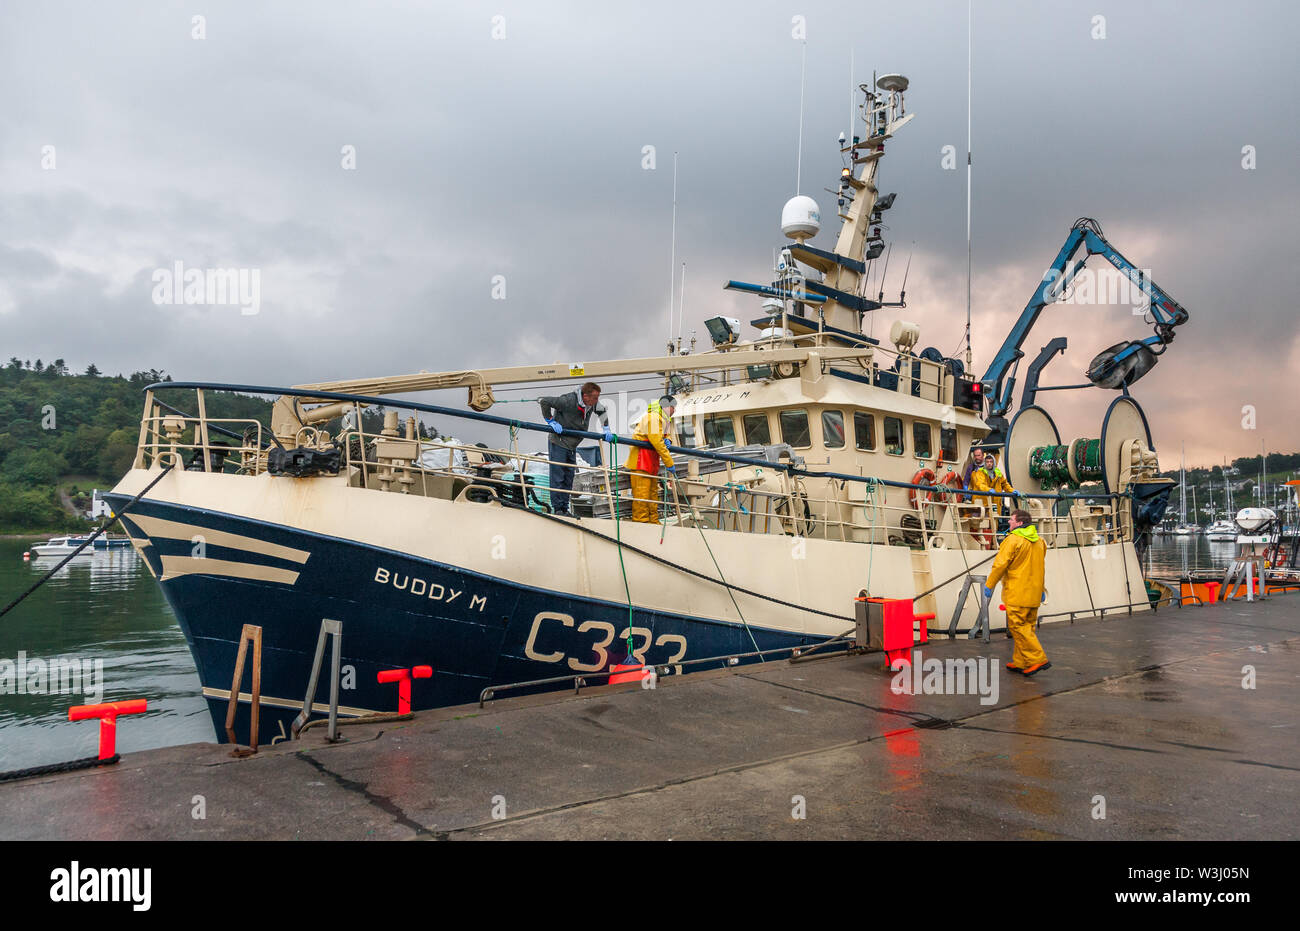 Crosshaven, Cork, Ireland. 16th July, 2019. Trawler Buddy M tying up at the quayside in Crosshaven, Co. Cork after returning from the Celtic Sea with her catch of Haddock and Whiting. Credit: David Creedon/Alamy Live News - Stock Image